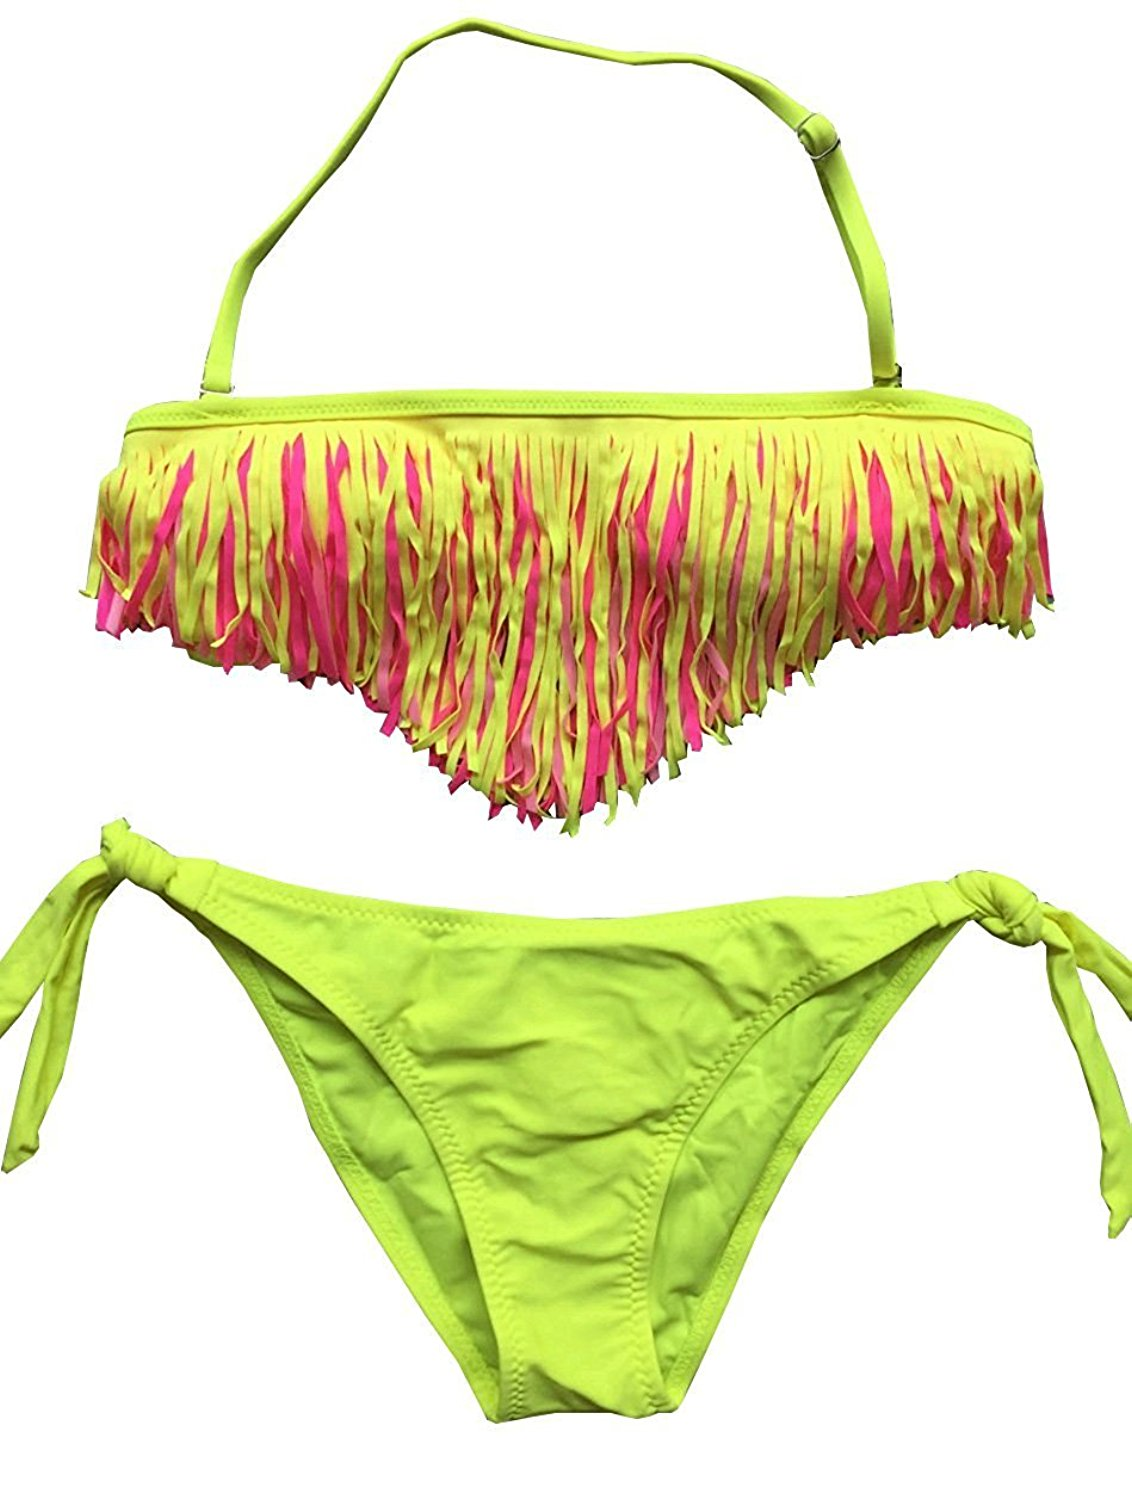 512f682c65b7c Get Quotations · R6HxiaoFa MAKZ Reflective Fluorescent 3-Layer Tassel Bikini  Bathing Suit for Girls 6-16